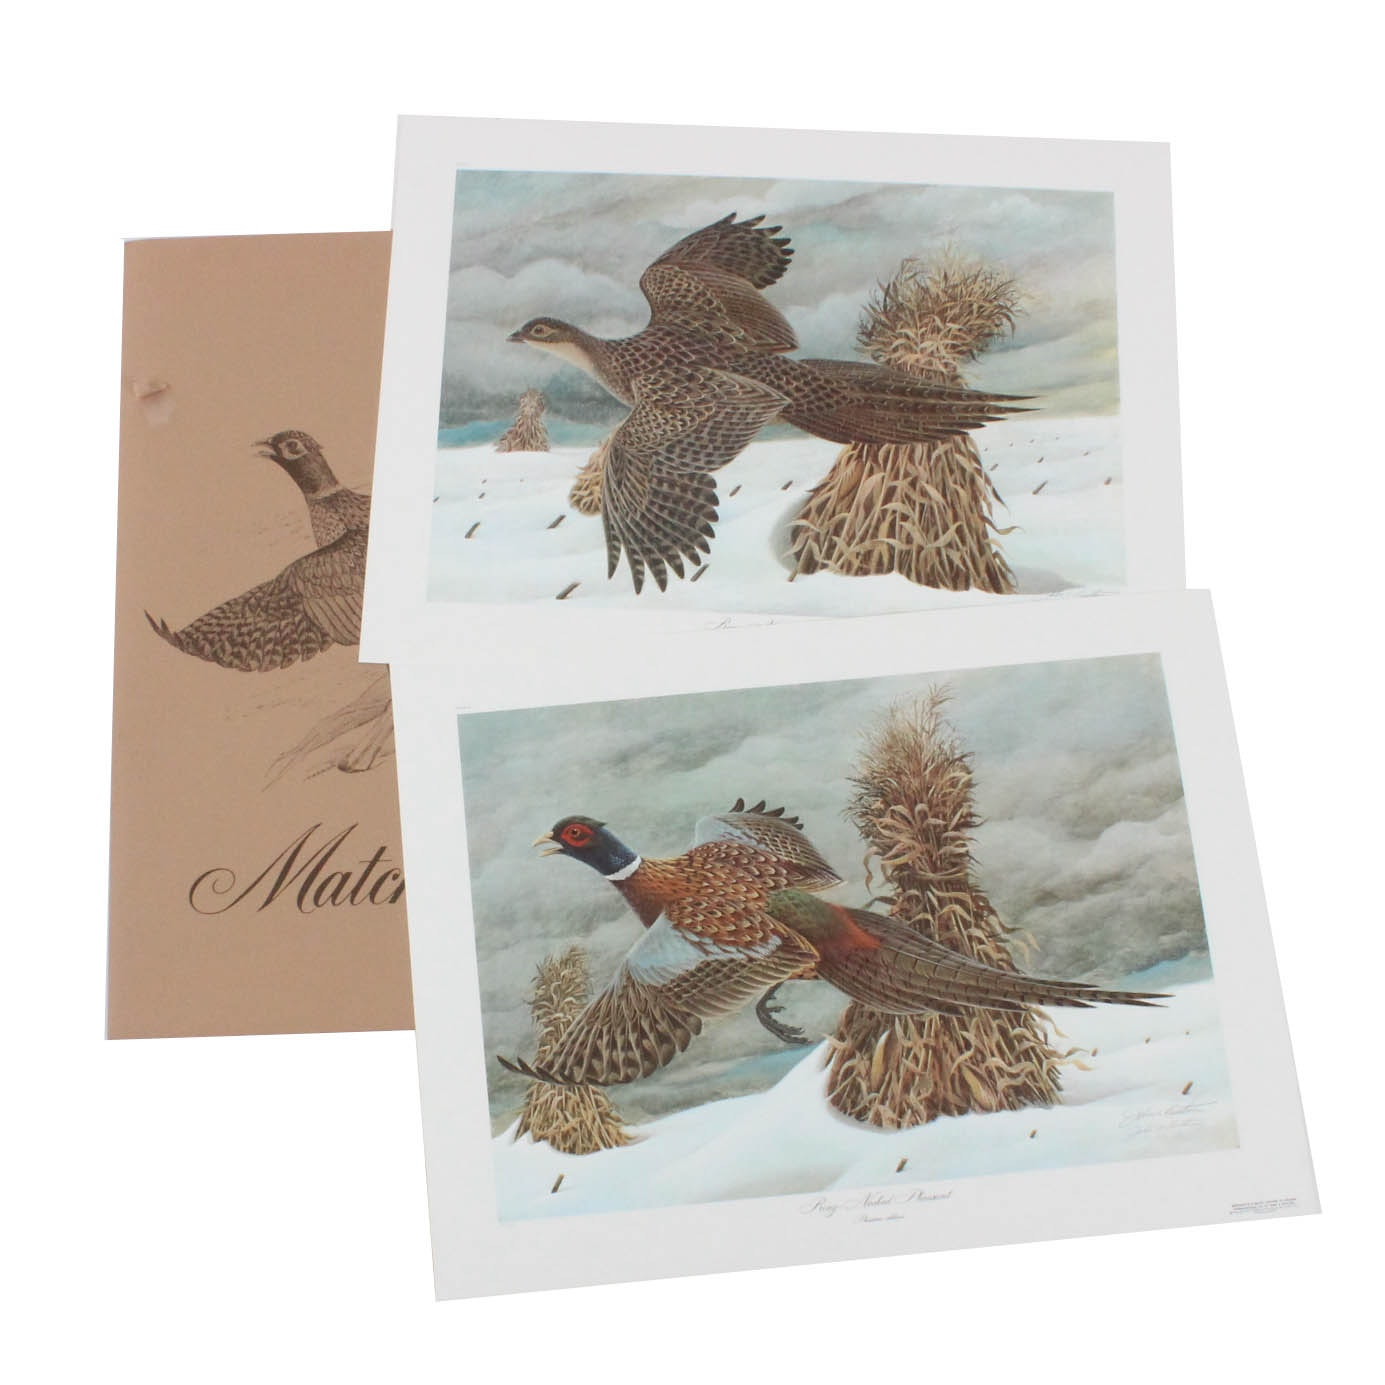 """Ring Neck Pheasant Matched Pair"" John Ruthven Signed Limited Offset Lithographs"